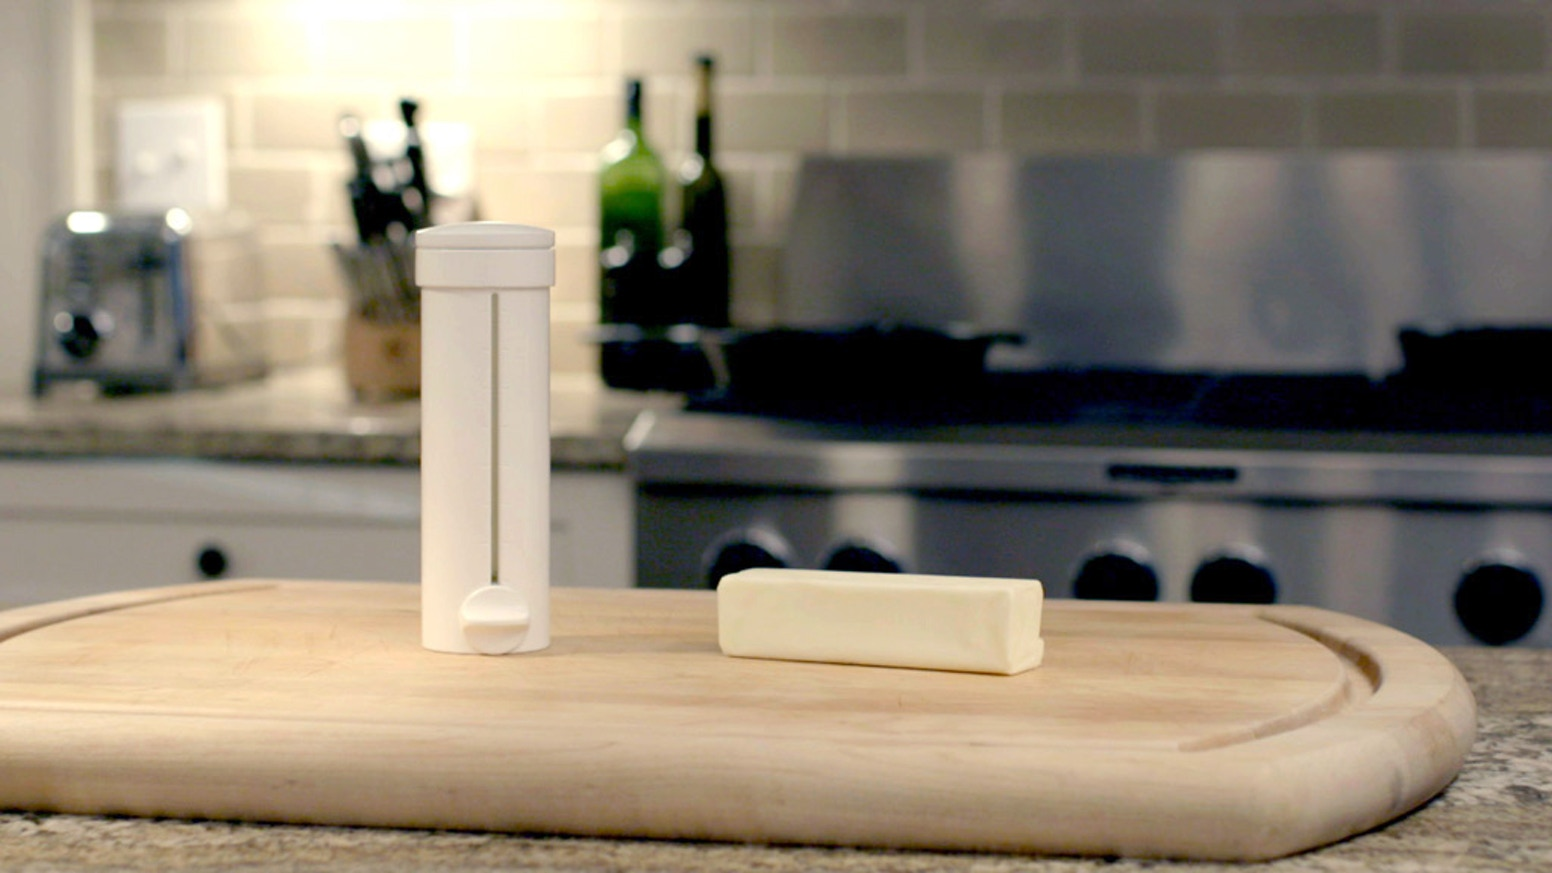 Spread, measure, cut and store butter with one tool. It's simply the better way to butter!